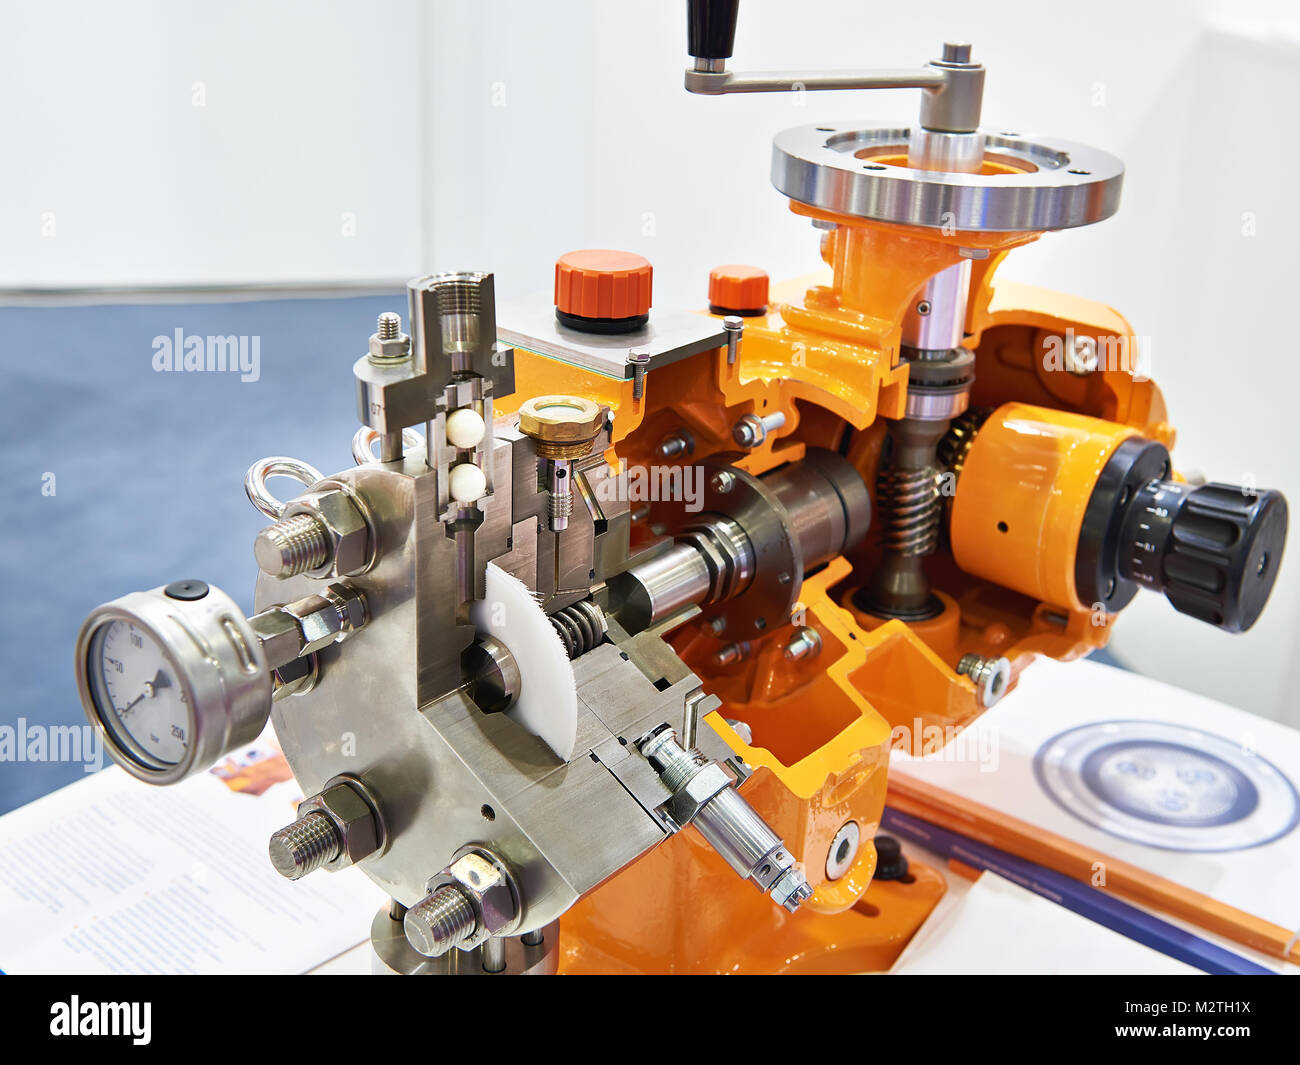 Hydraulic Diaphragm Metering Pump in section - Stock Image